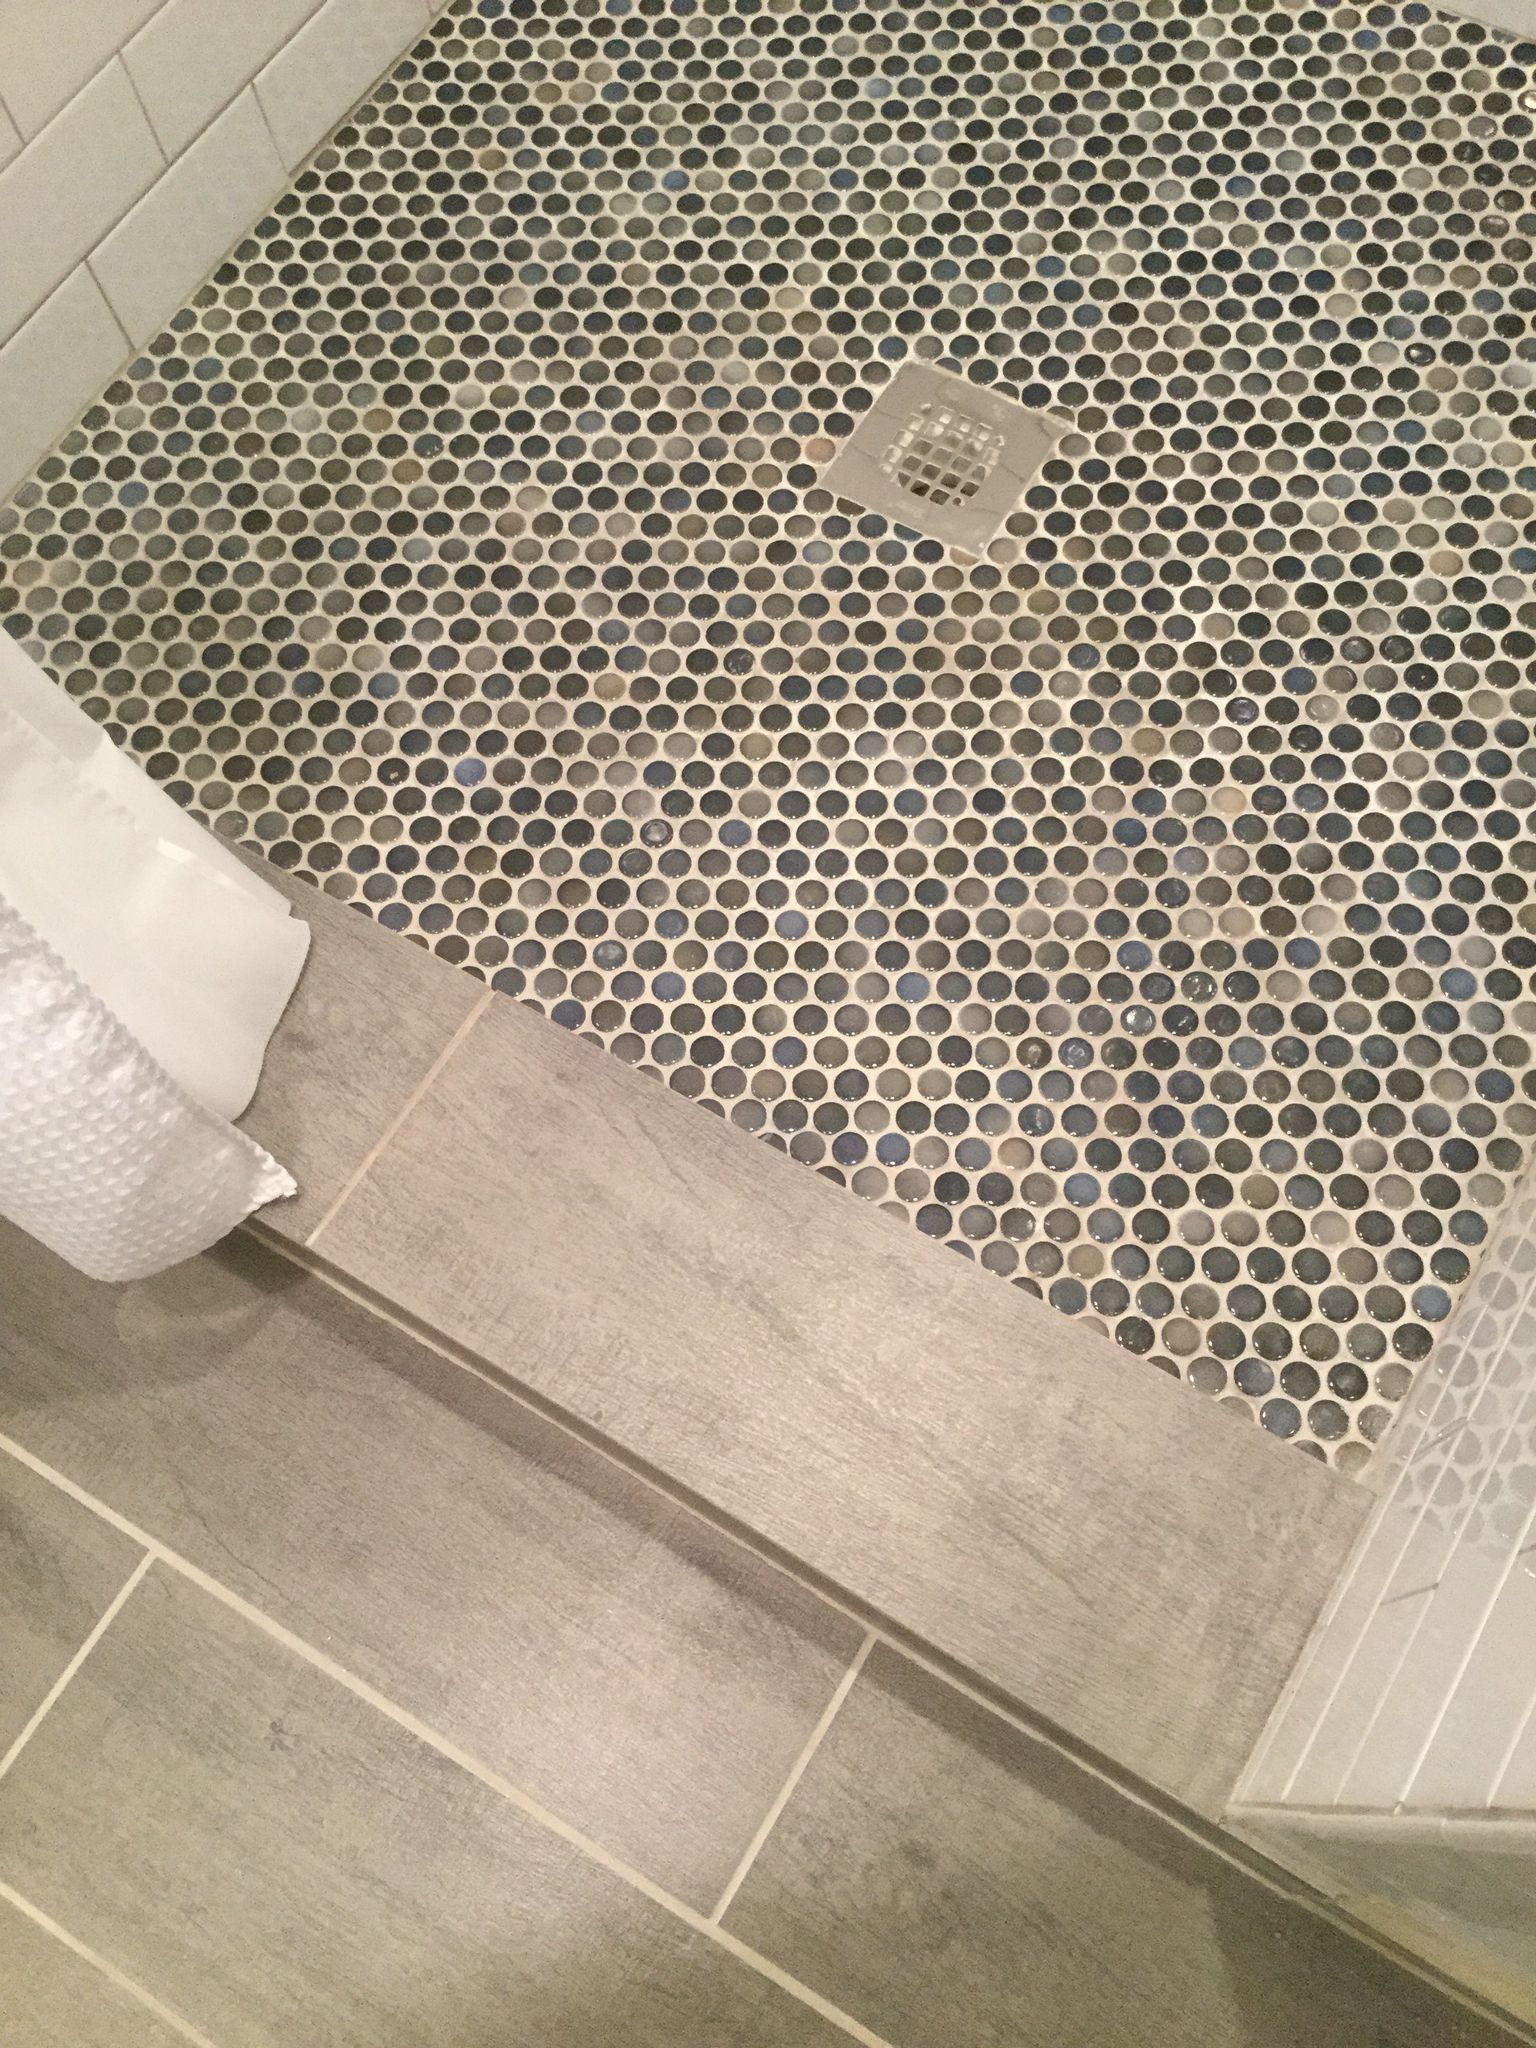 Blue And Gray Penny Tile On Shower Floor Unique Bathroom Tiles